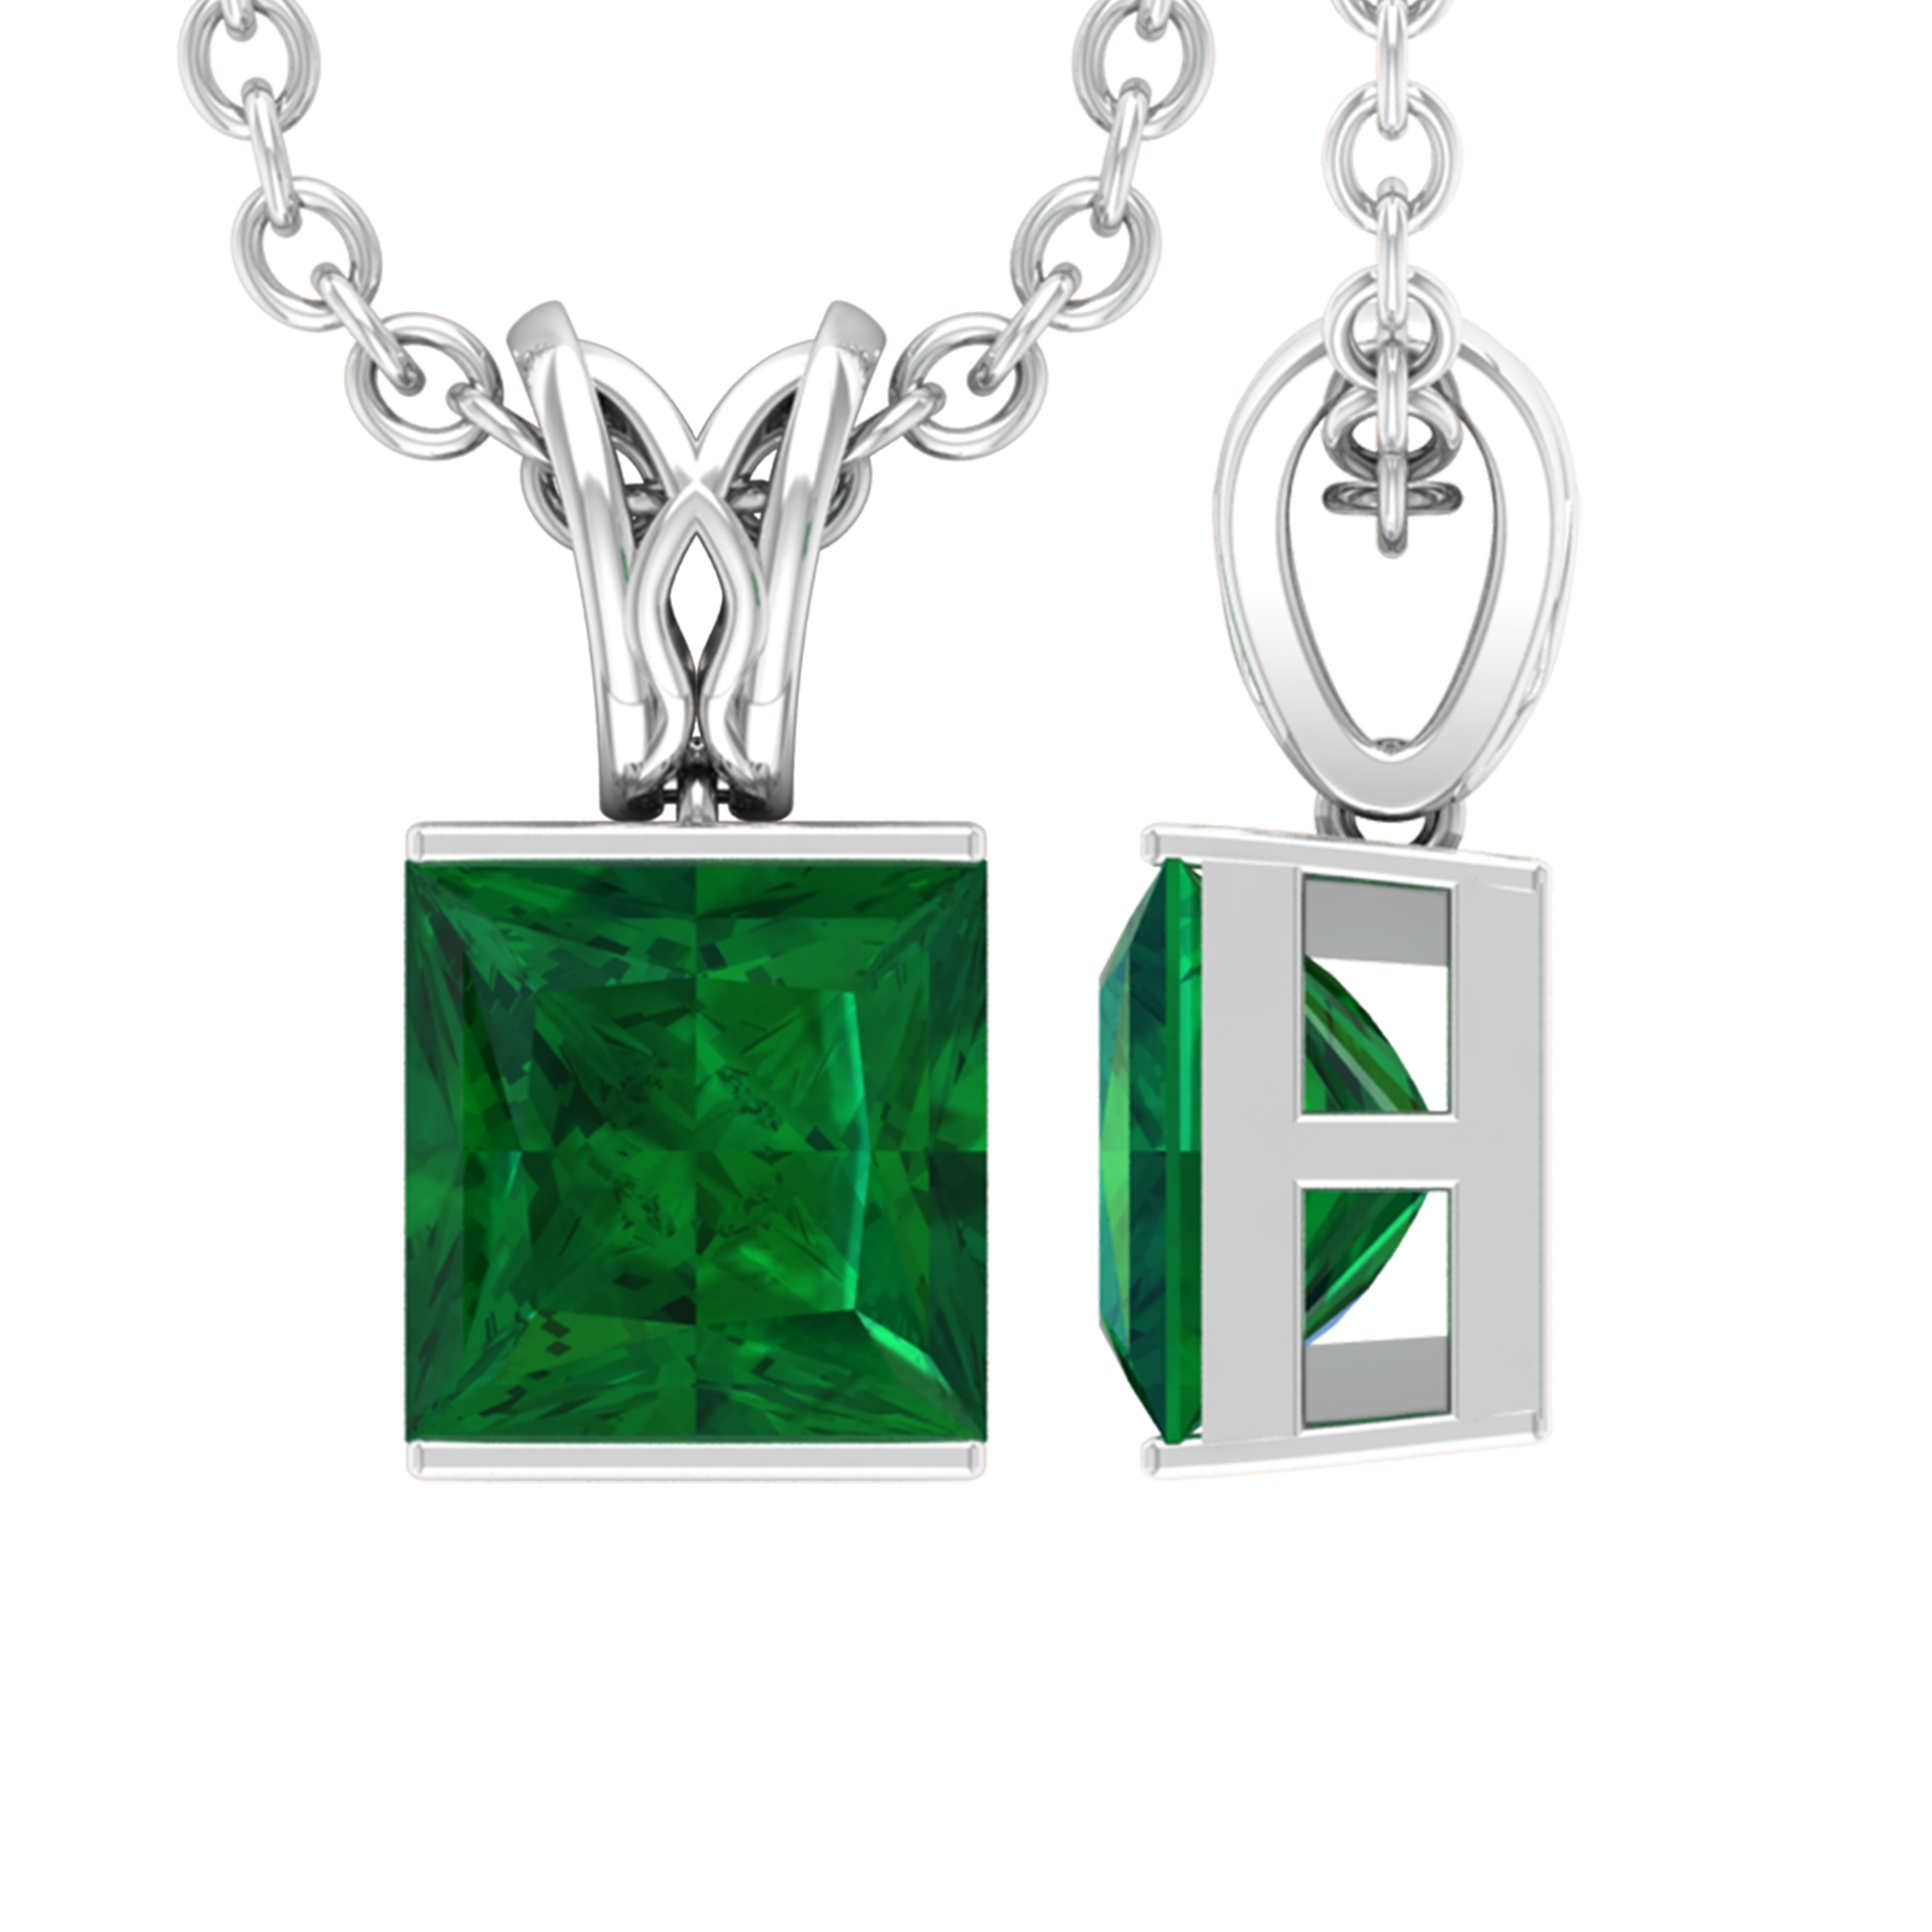 4.5 MM Princess Cut Emerald Solitaire Minimal Pendant in Bar Setting with Decorative Bail